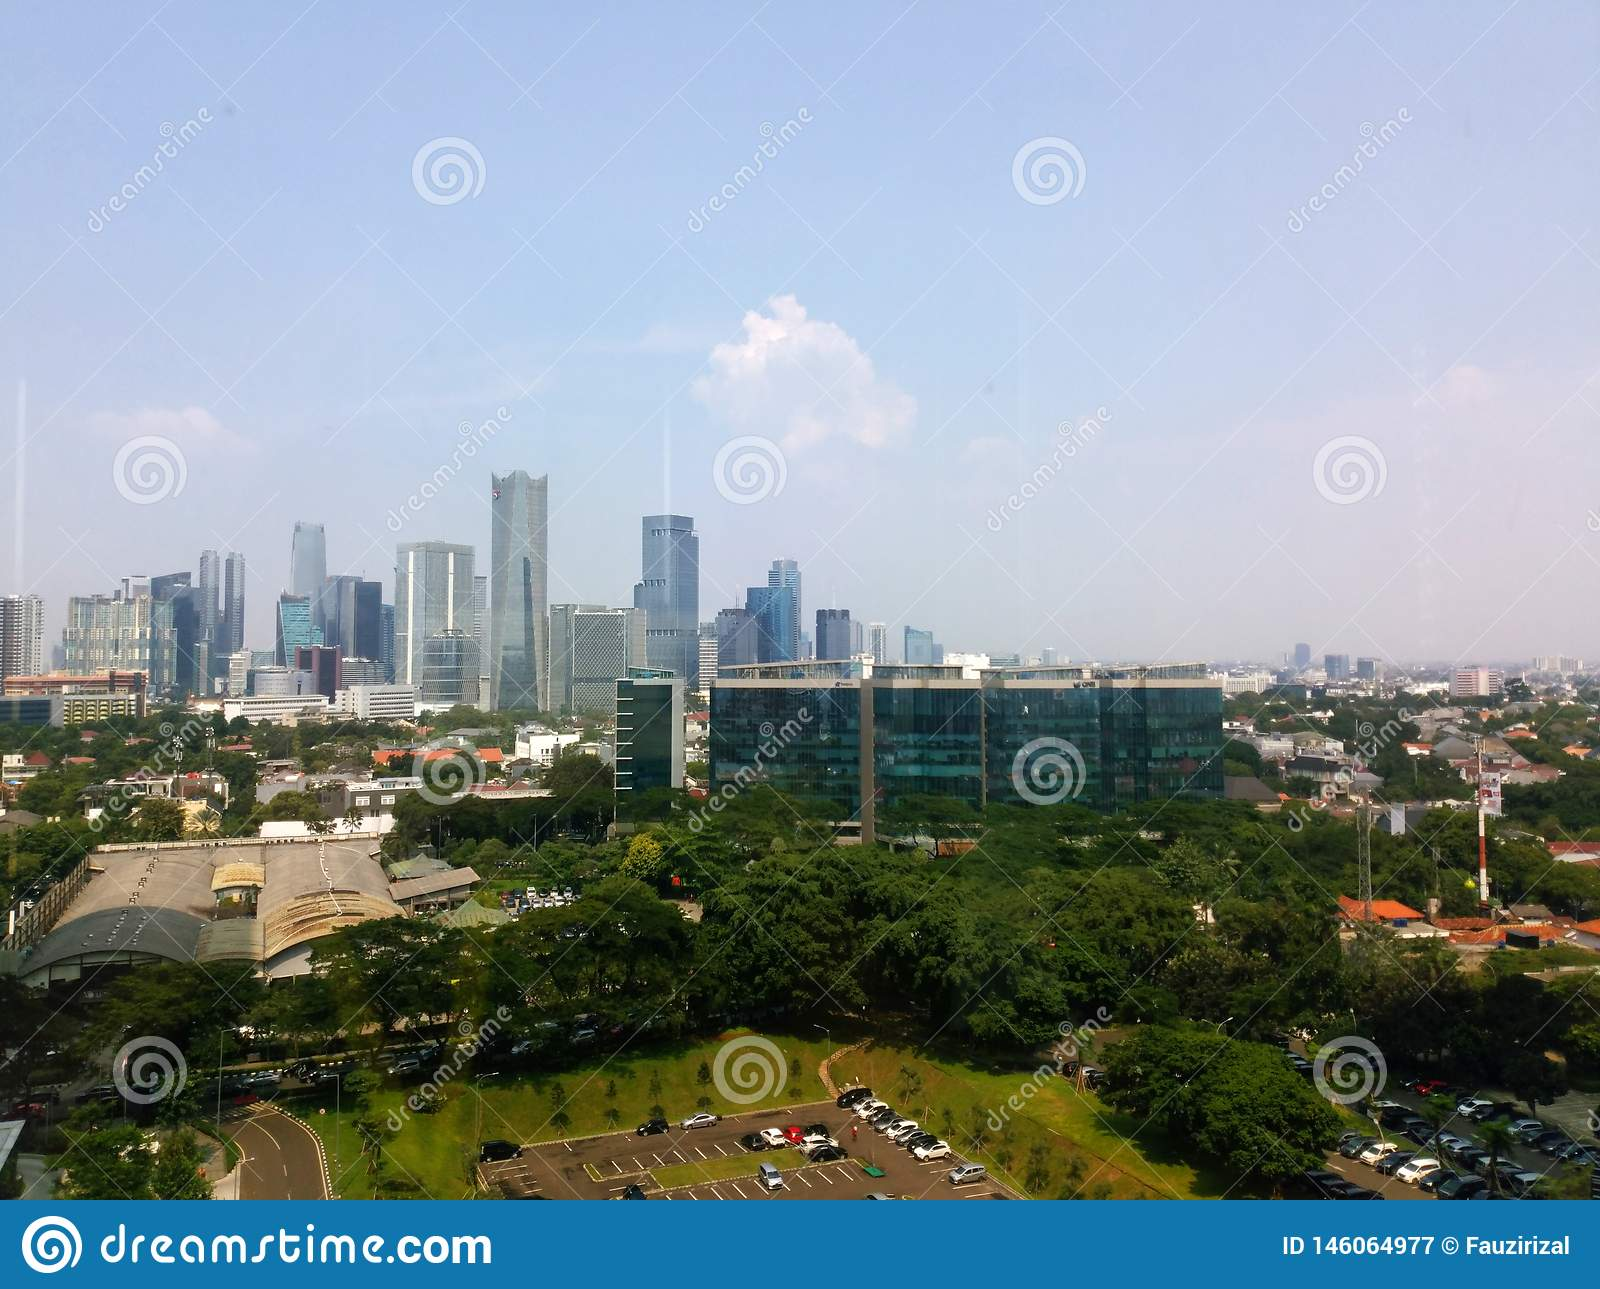 Jakarta building view with morning Blue sky. Jakarta Cityscape view from rofftop